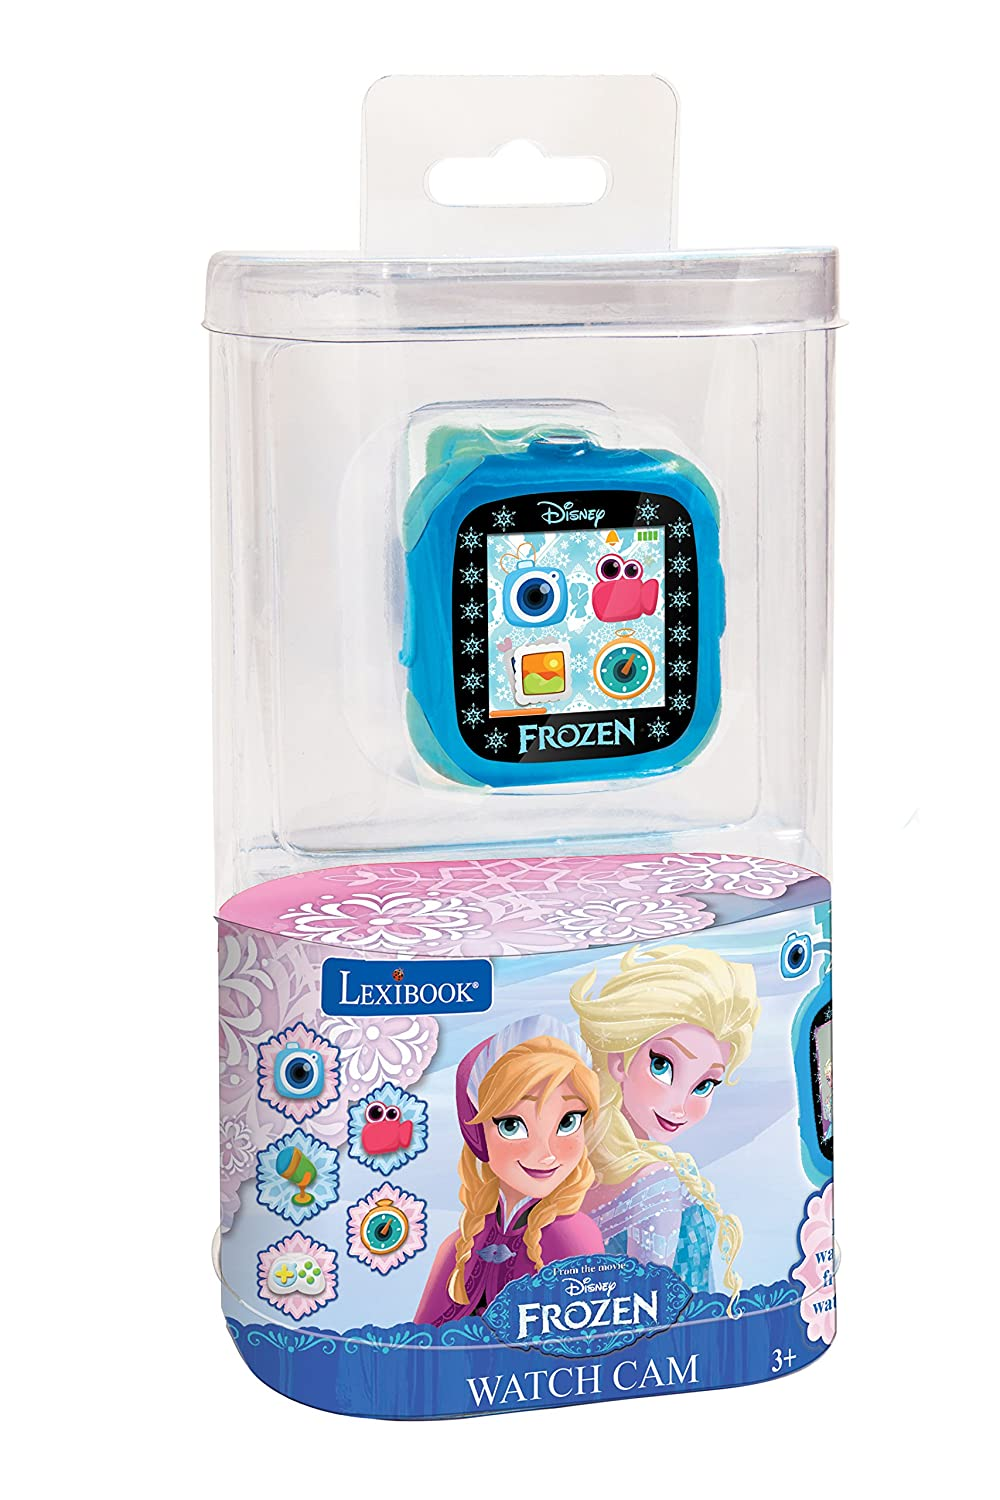 Amazon.es: Disney Frozen - Reloj, cámara smartwatch, Color Azul (Lexibook DMW100FZ)